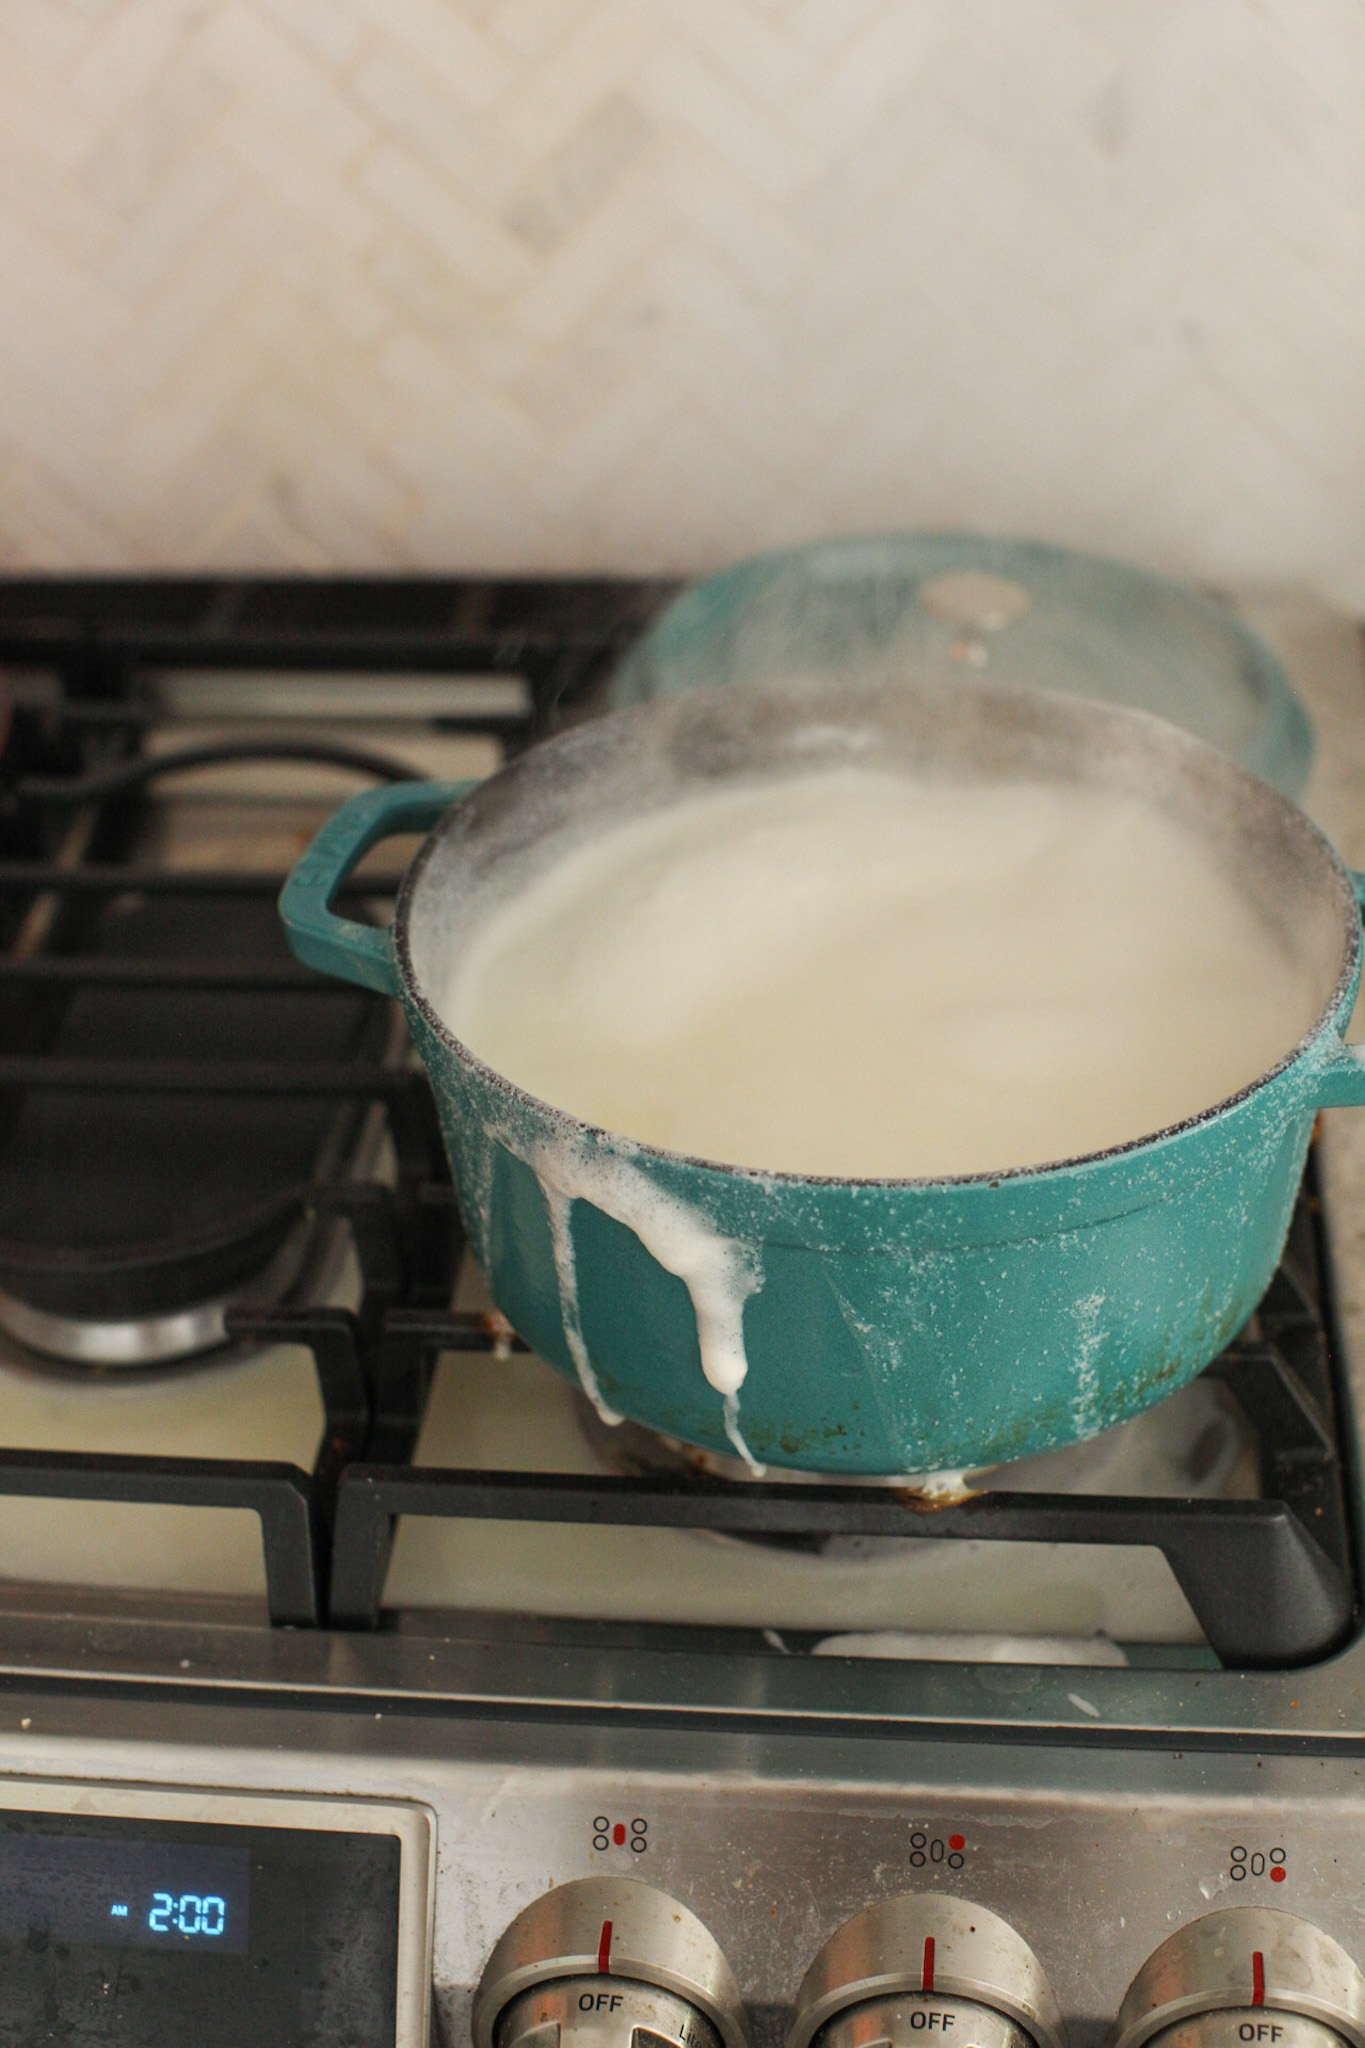 soy milk boiled over on stove